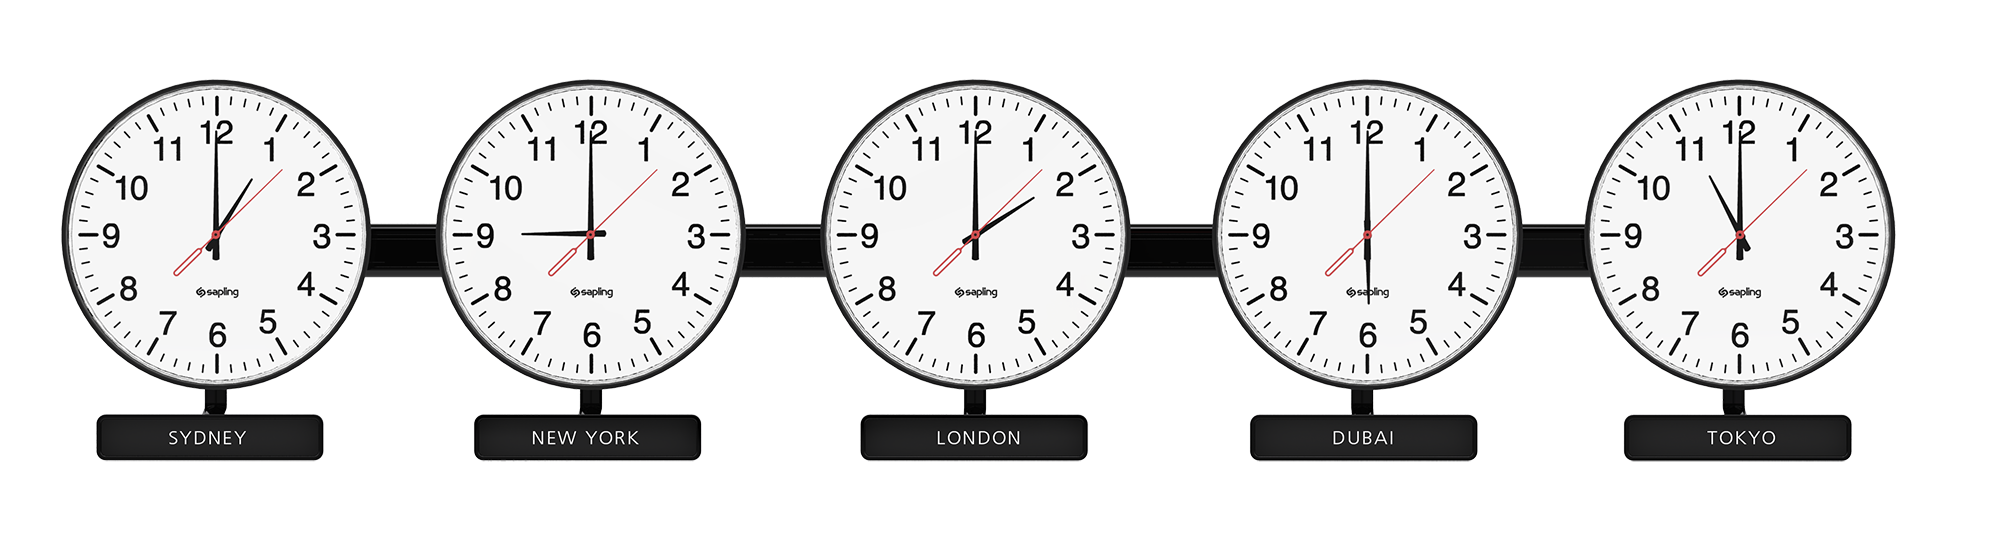 12-inch-Analog-Zone-Clock-copy.png